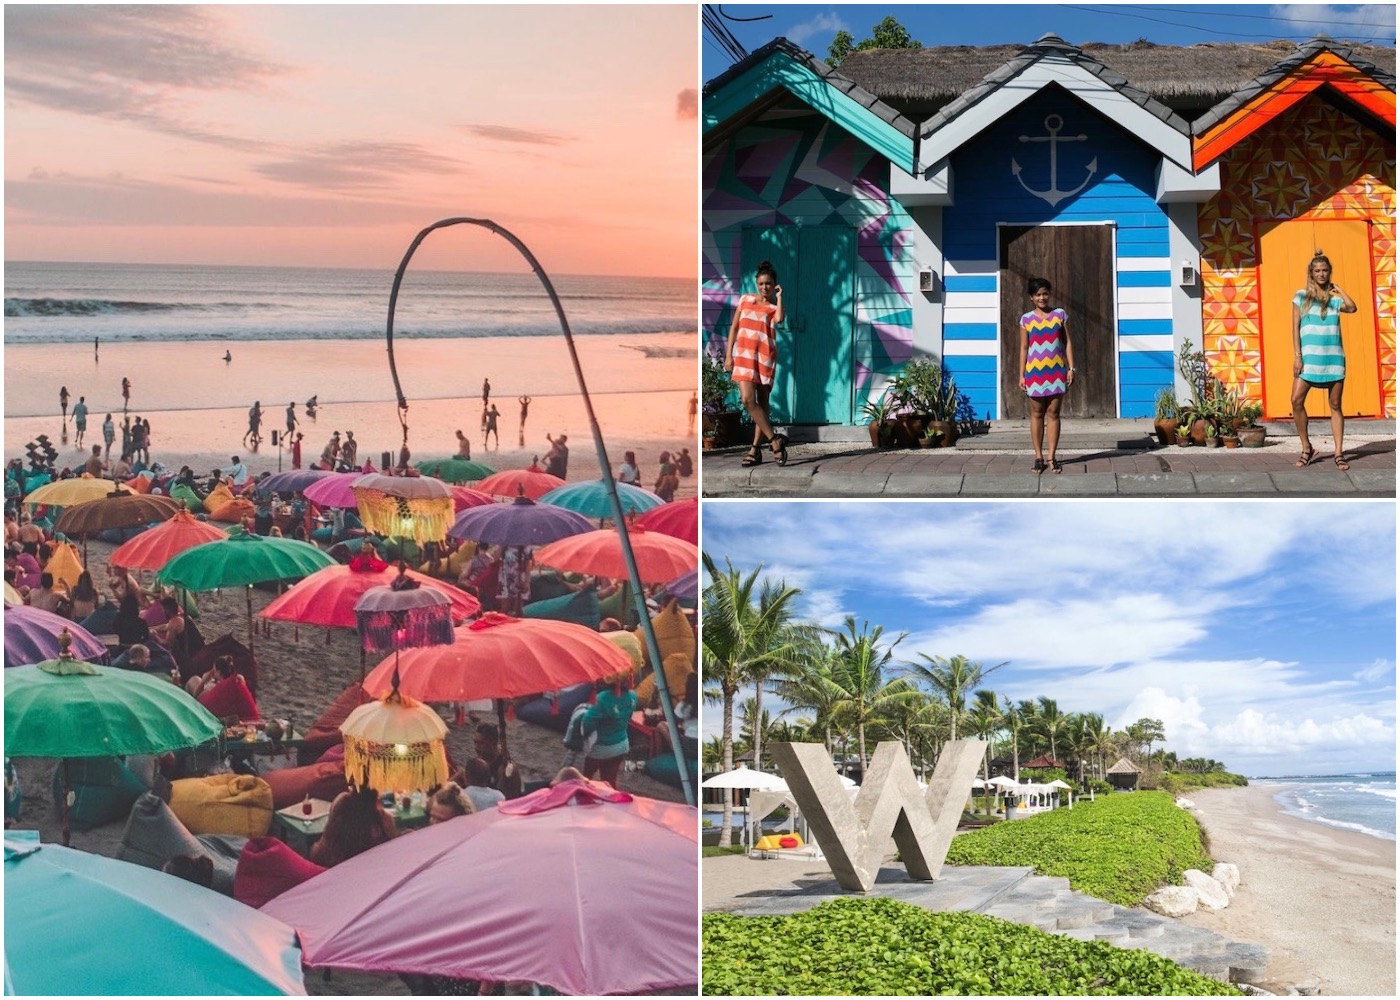 Neighbourhood Guide - where to stay, eat & shop in Seminyak, Bali, Indonesia